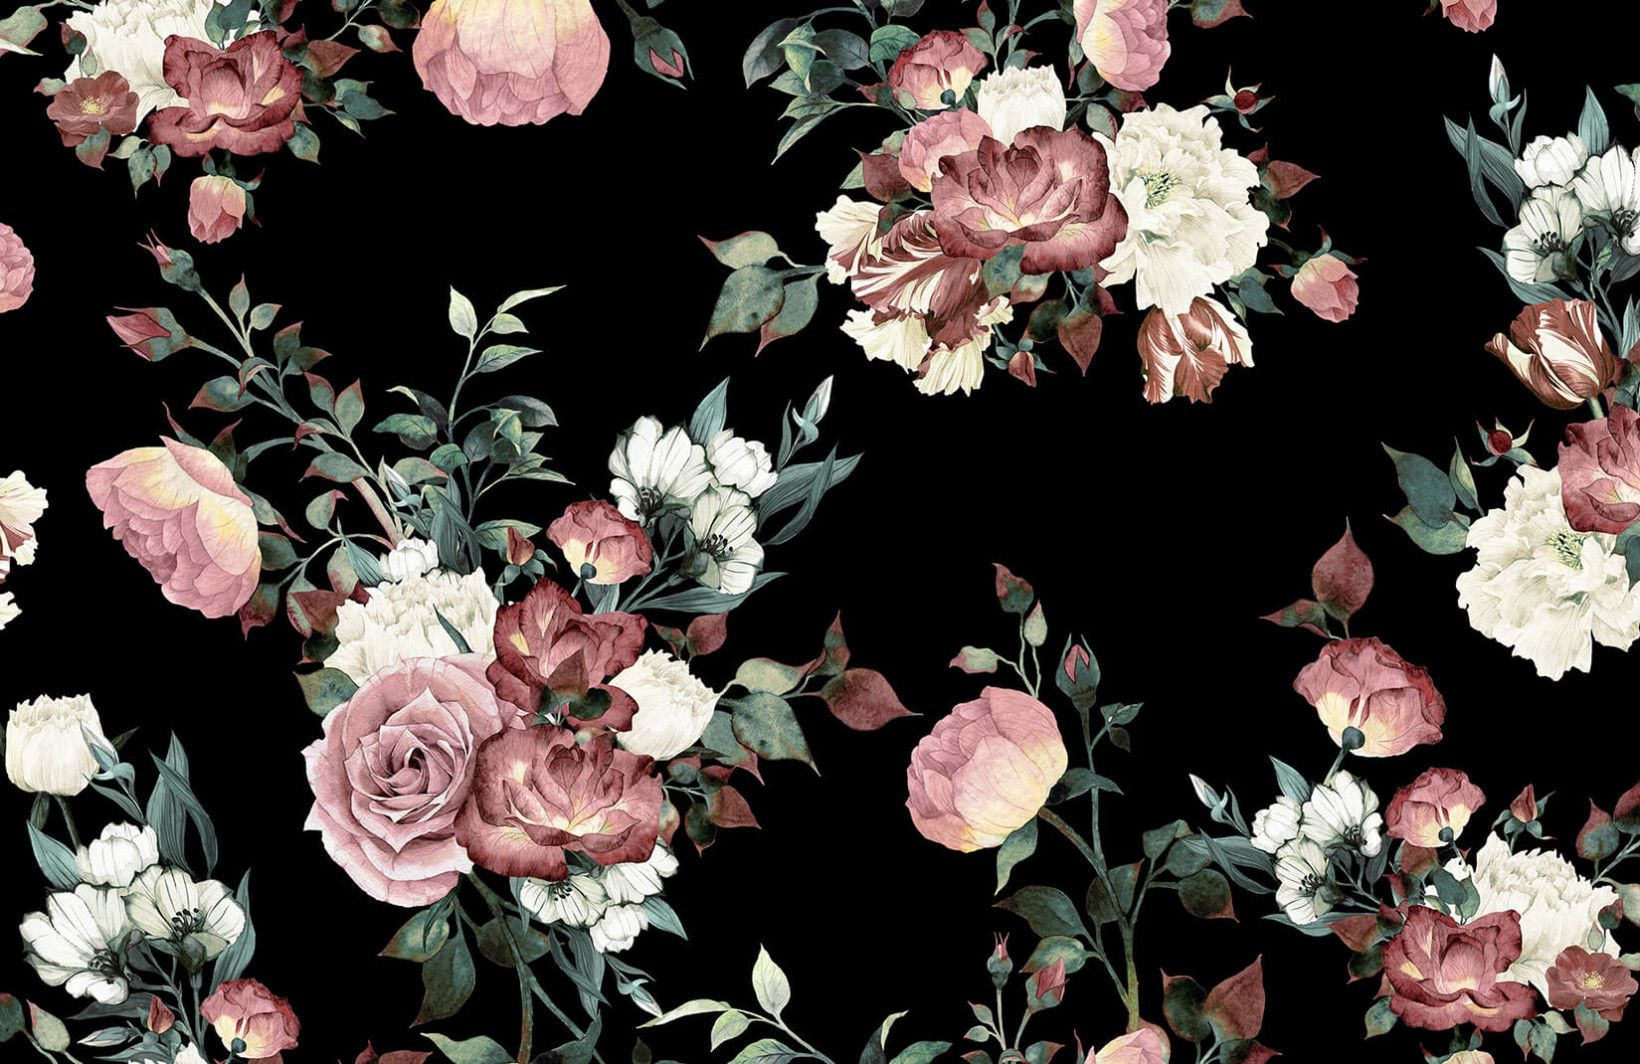 Vintage Pink And Cream Dark Floral Plain Vintage Flowers Wallpaper Black Floral Wallpaper Vintage Floral Wallpapers